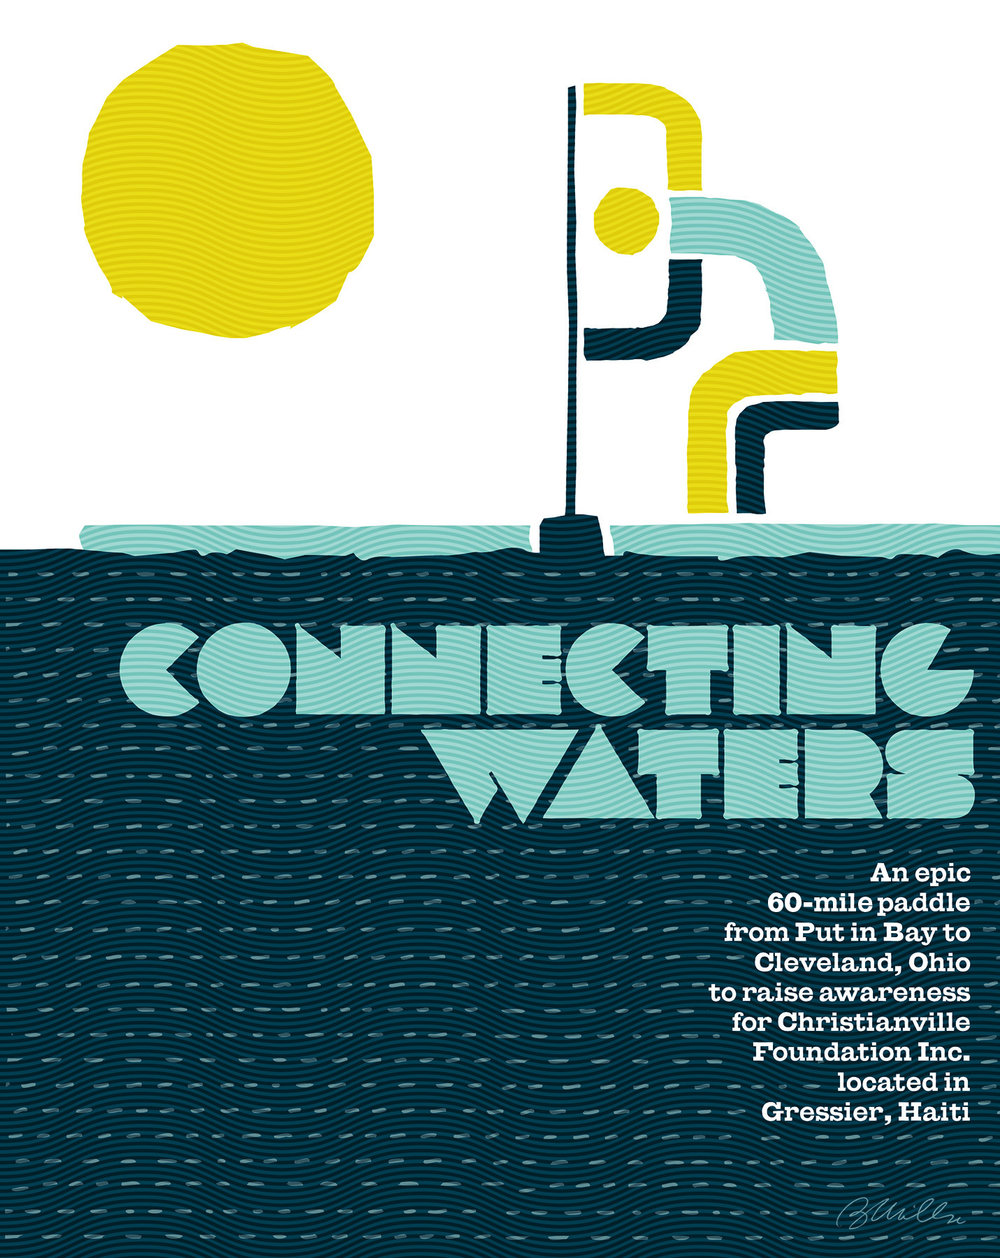 Connecting_Water.jpg